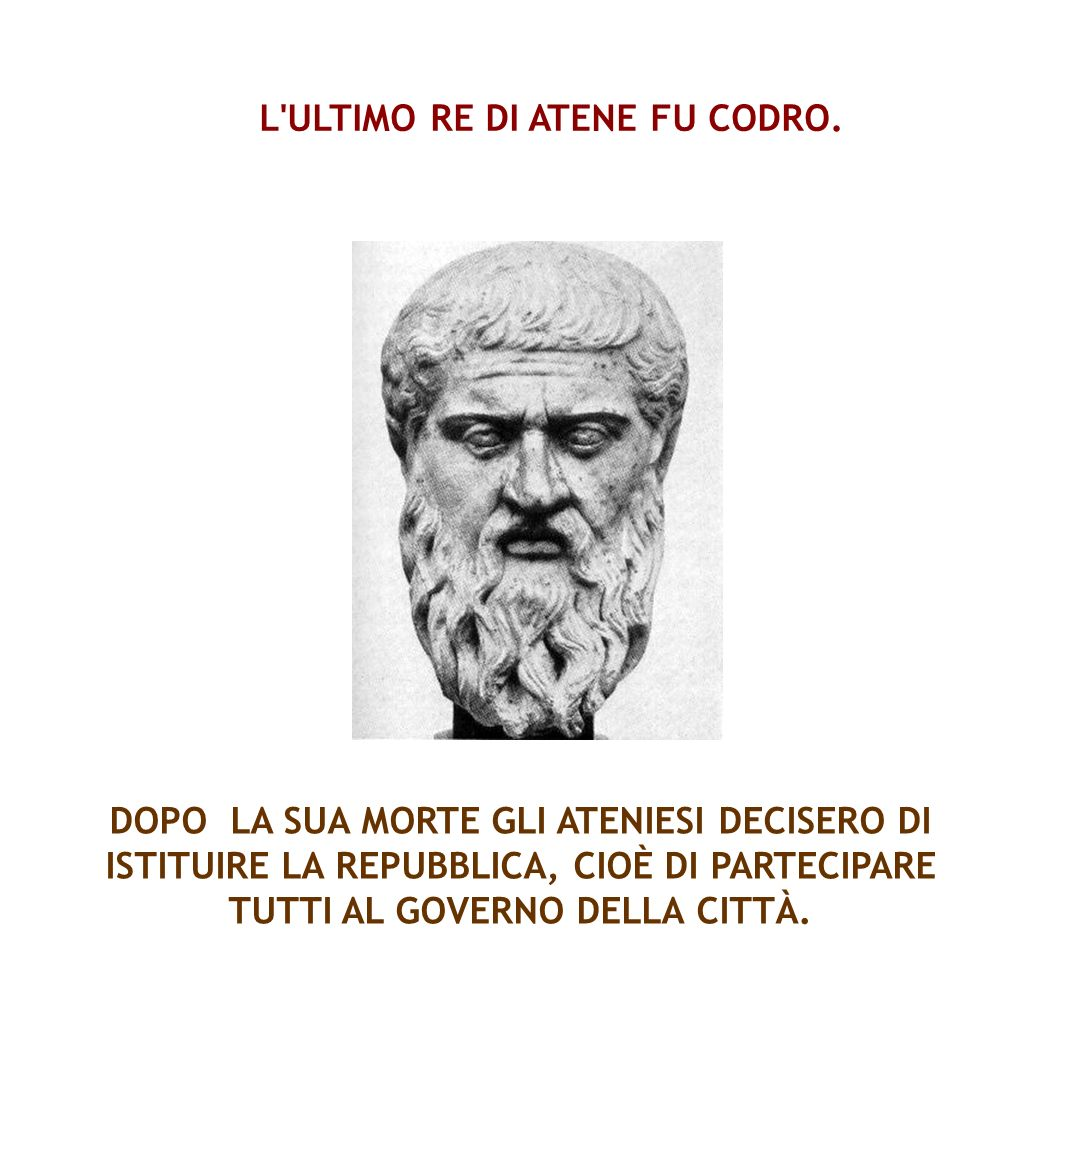 L ULTIMO RE DI ATENE FU CODRO.